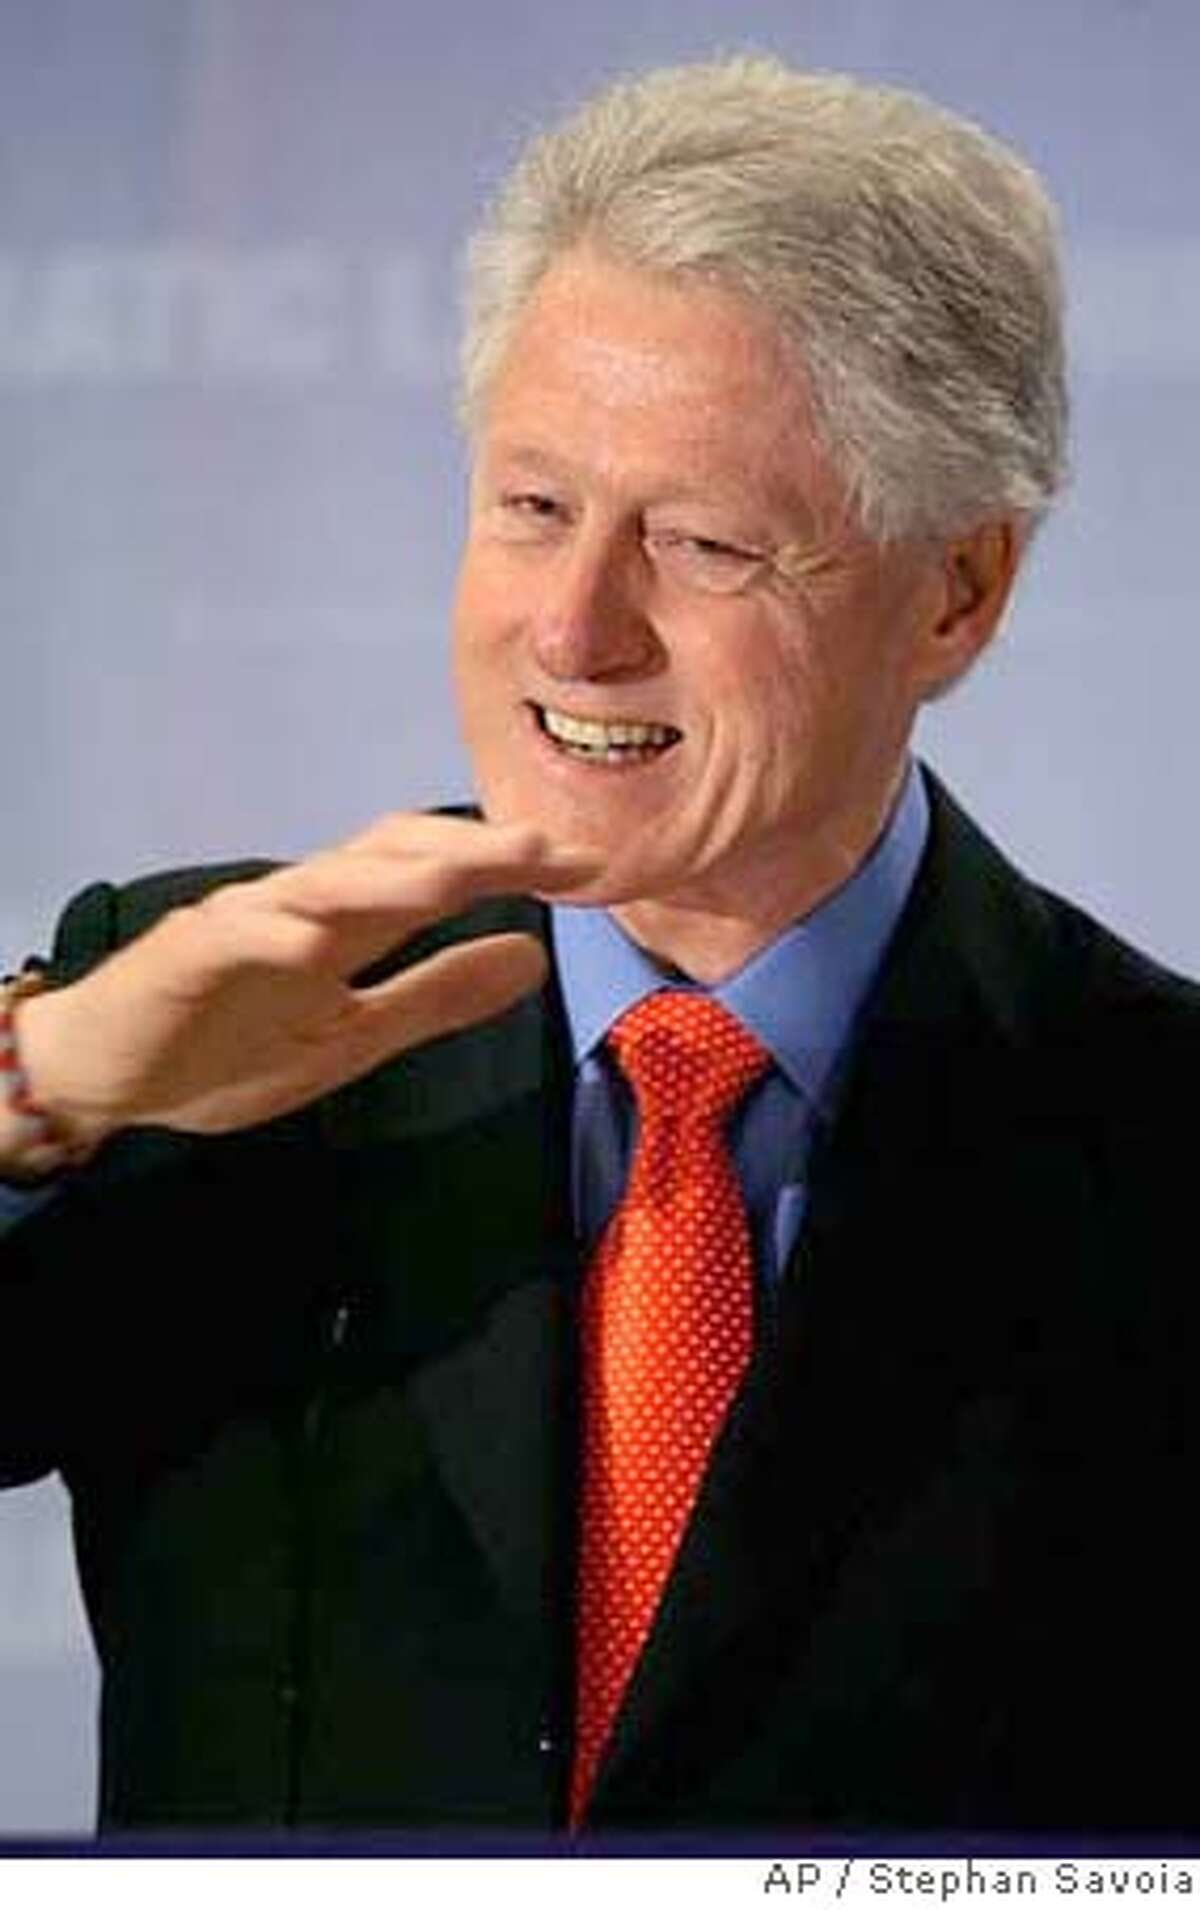 Former U.S. President Bill Clinton addresses a Democratic Leadership Council luncheon before presenting the DLC Clinton Center Award for 2006 to recipients in Cambridge, Mass., Thursday, Dec. 14, 2006. (AP Photo/Stephan Savoia) STAND ALONE PHOTO